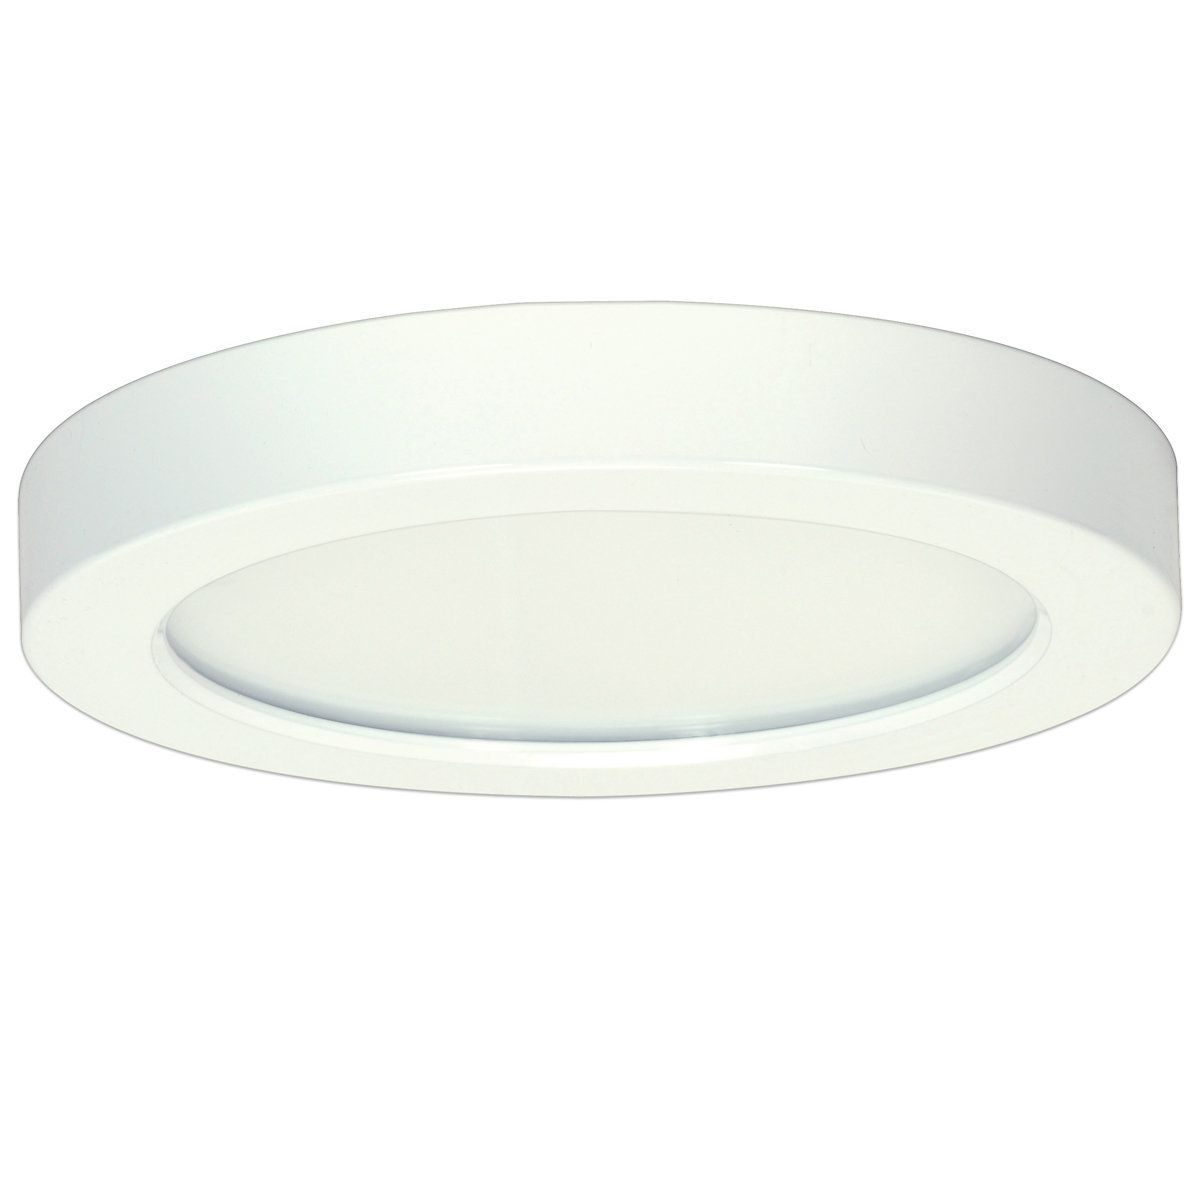 7 Led Simple Round Low Profile Ceiling Light With Images Ceiling Lights Flush Mount Ceiling Lights Recessed Lighting